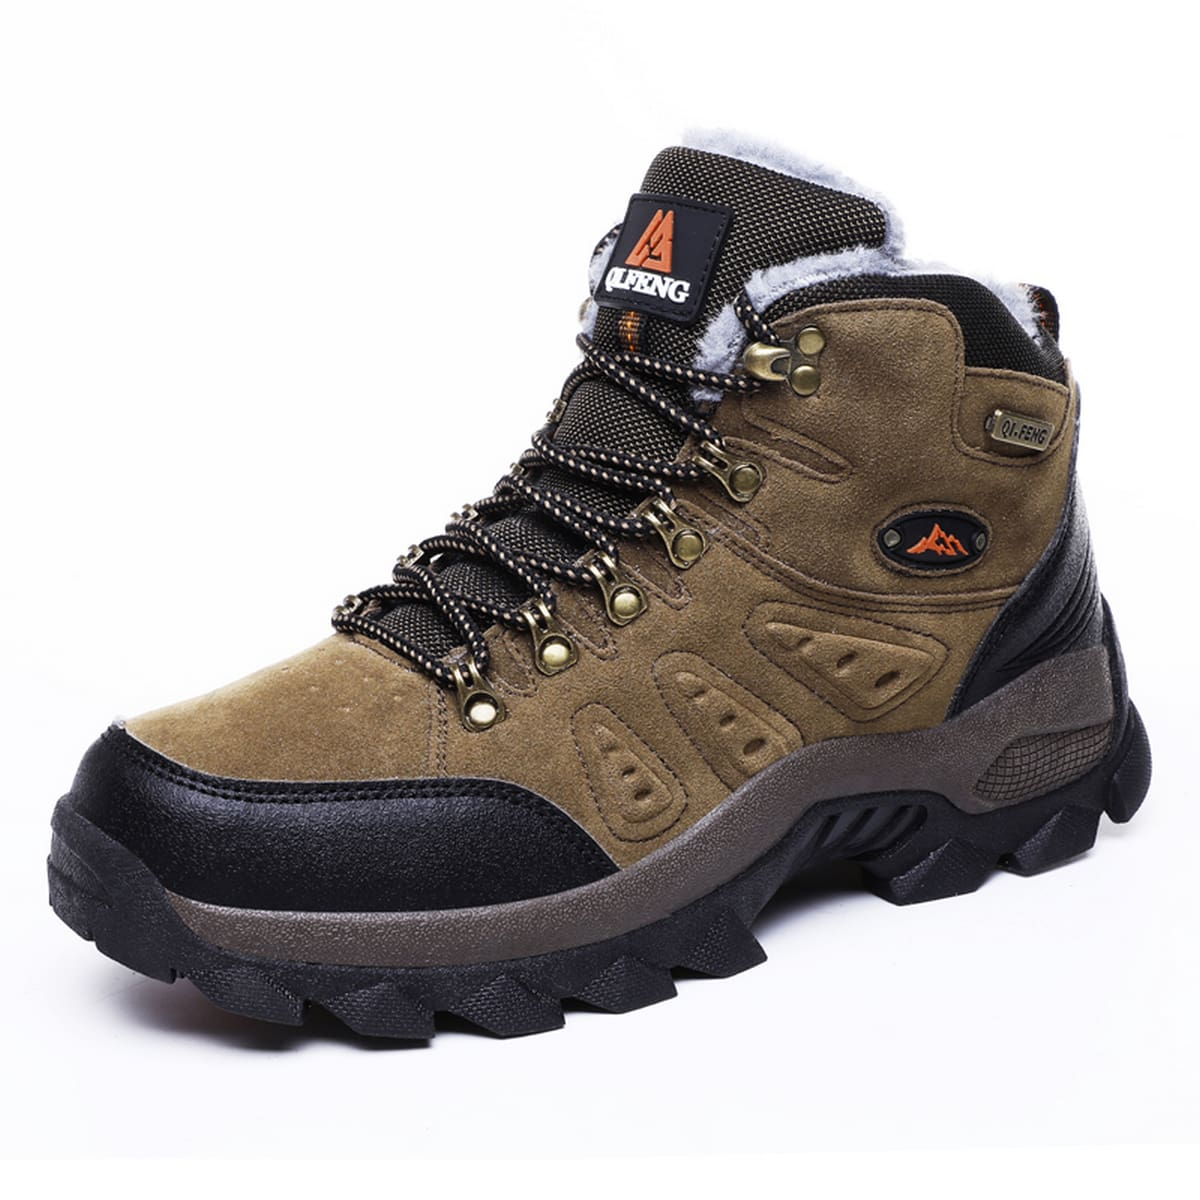 Men Two Tone Fuzzy Hiking Boots